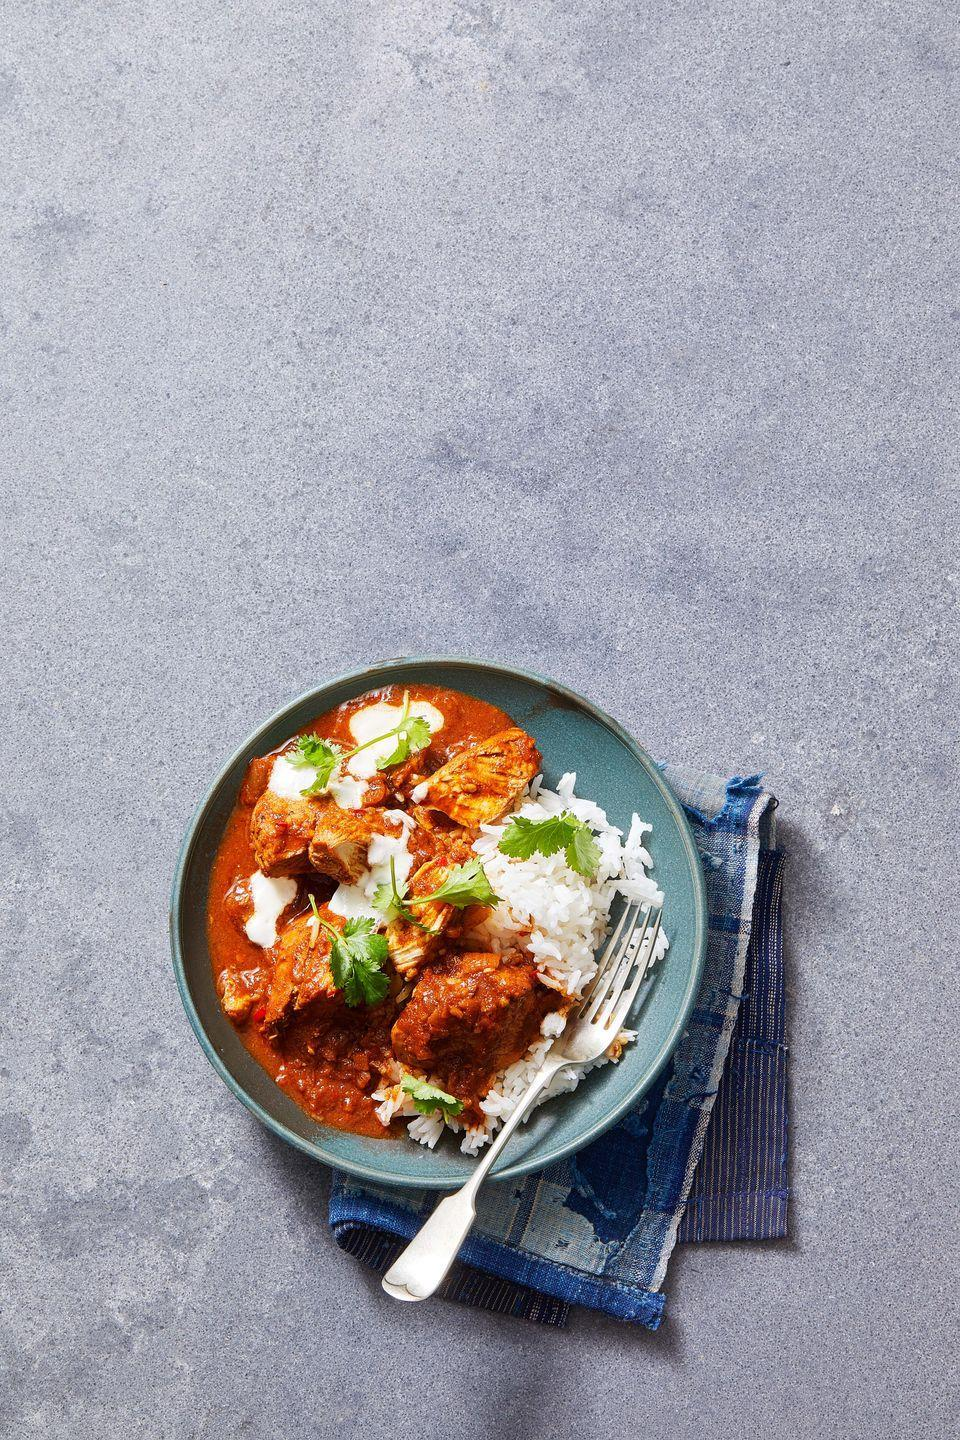 """<p>As if you need any more reason to make this flavorful Indian-style traditional curry, the recipe only calls for 30 minutes of total cooking time.</p><p><em><a href=""""https://www.goodhousekeeping.com/food-recipes/a7386/chicken-curry/"""" rel=""""nofollow noopener"""" target=""""_blank"""" data-ylk=""""slk:Get the recipe for Traditional Chicken Curry »"""" class=""""link rapid-noclick-resp"""">Get the recipe for Traditional Chicken Curry »</a></em></p>"""